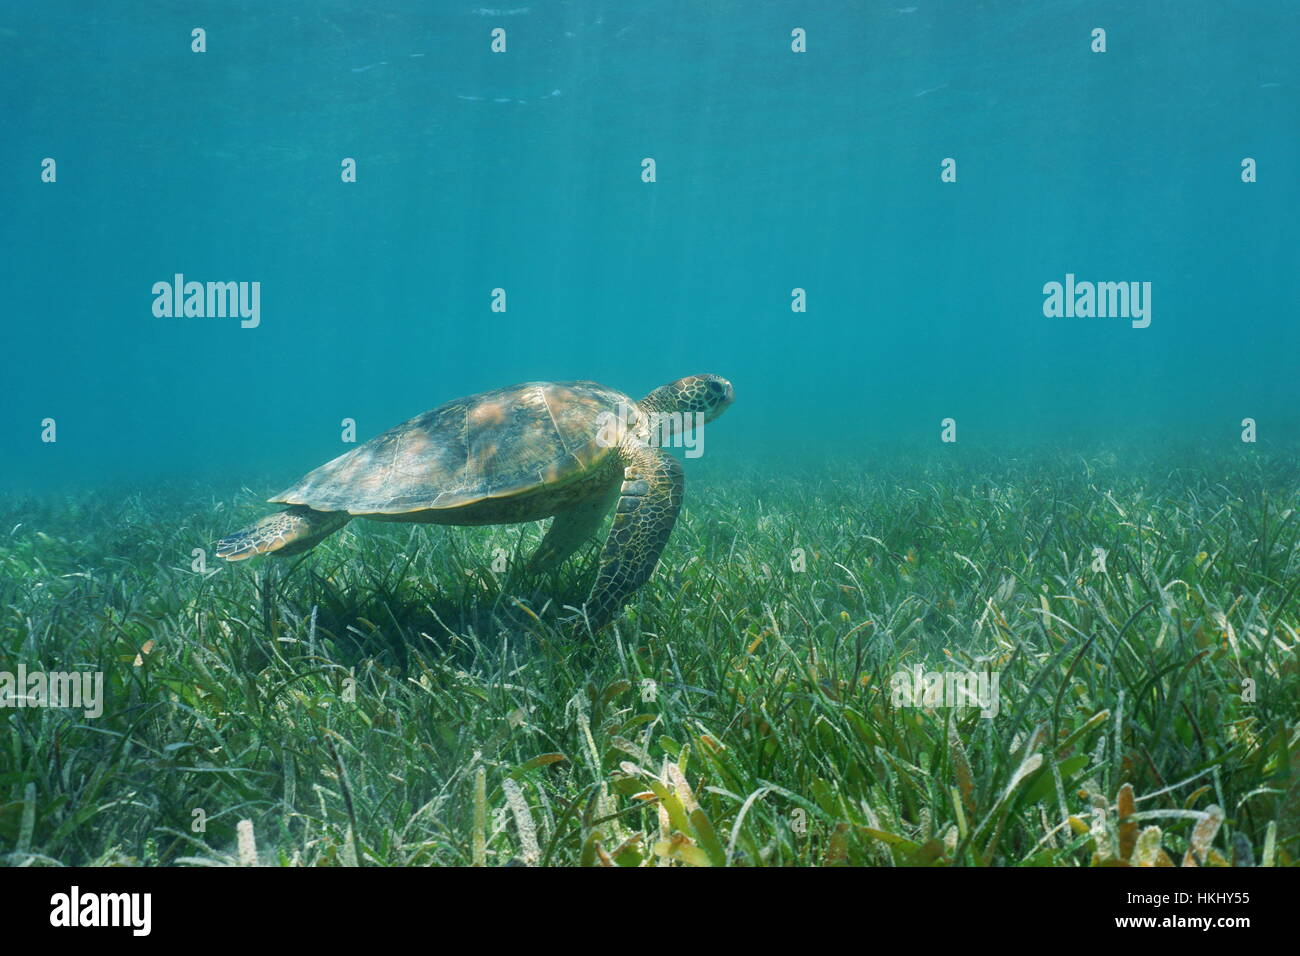 Underwater green sea turtle swims over grassy seabed, south Pacific ocean, lagoon of Grand Terre island in New Caledonia - Stock Image